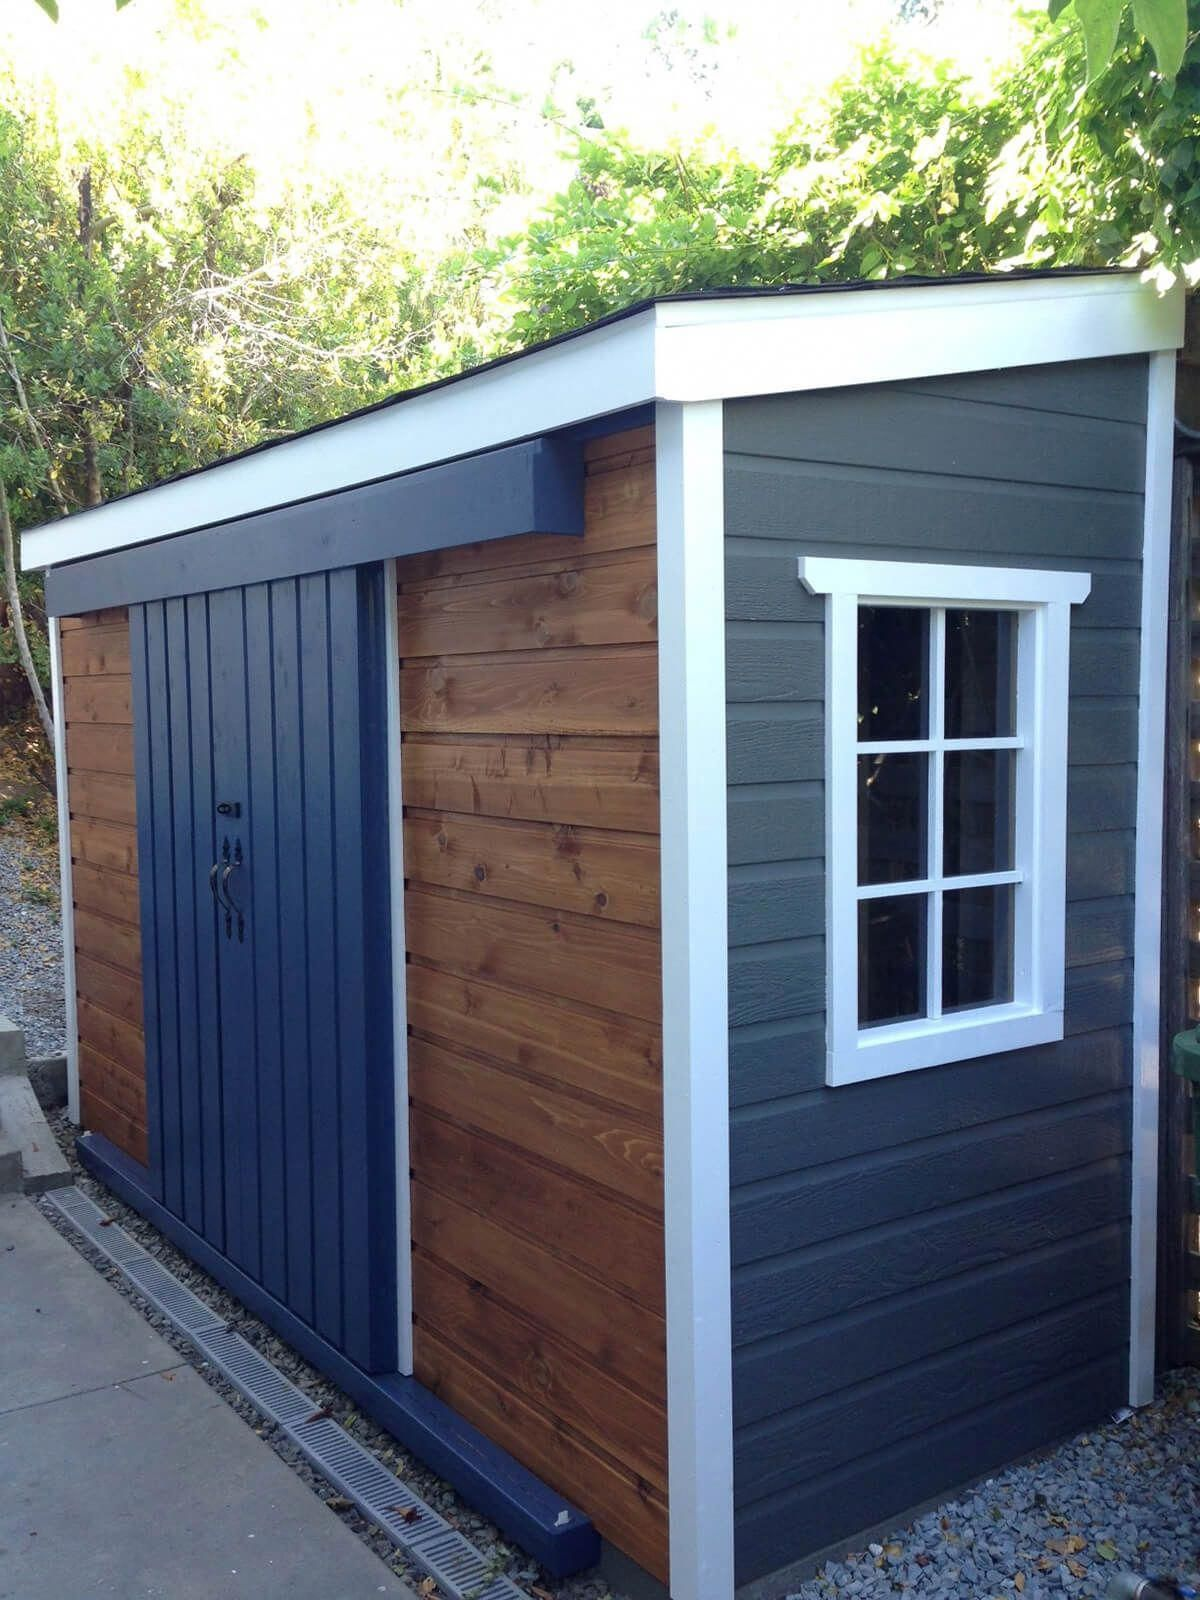 27 Unique Small Storage Shed Ideas For